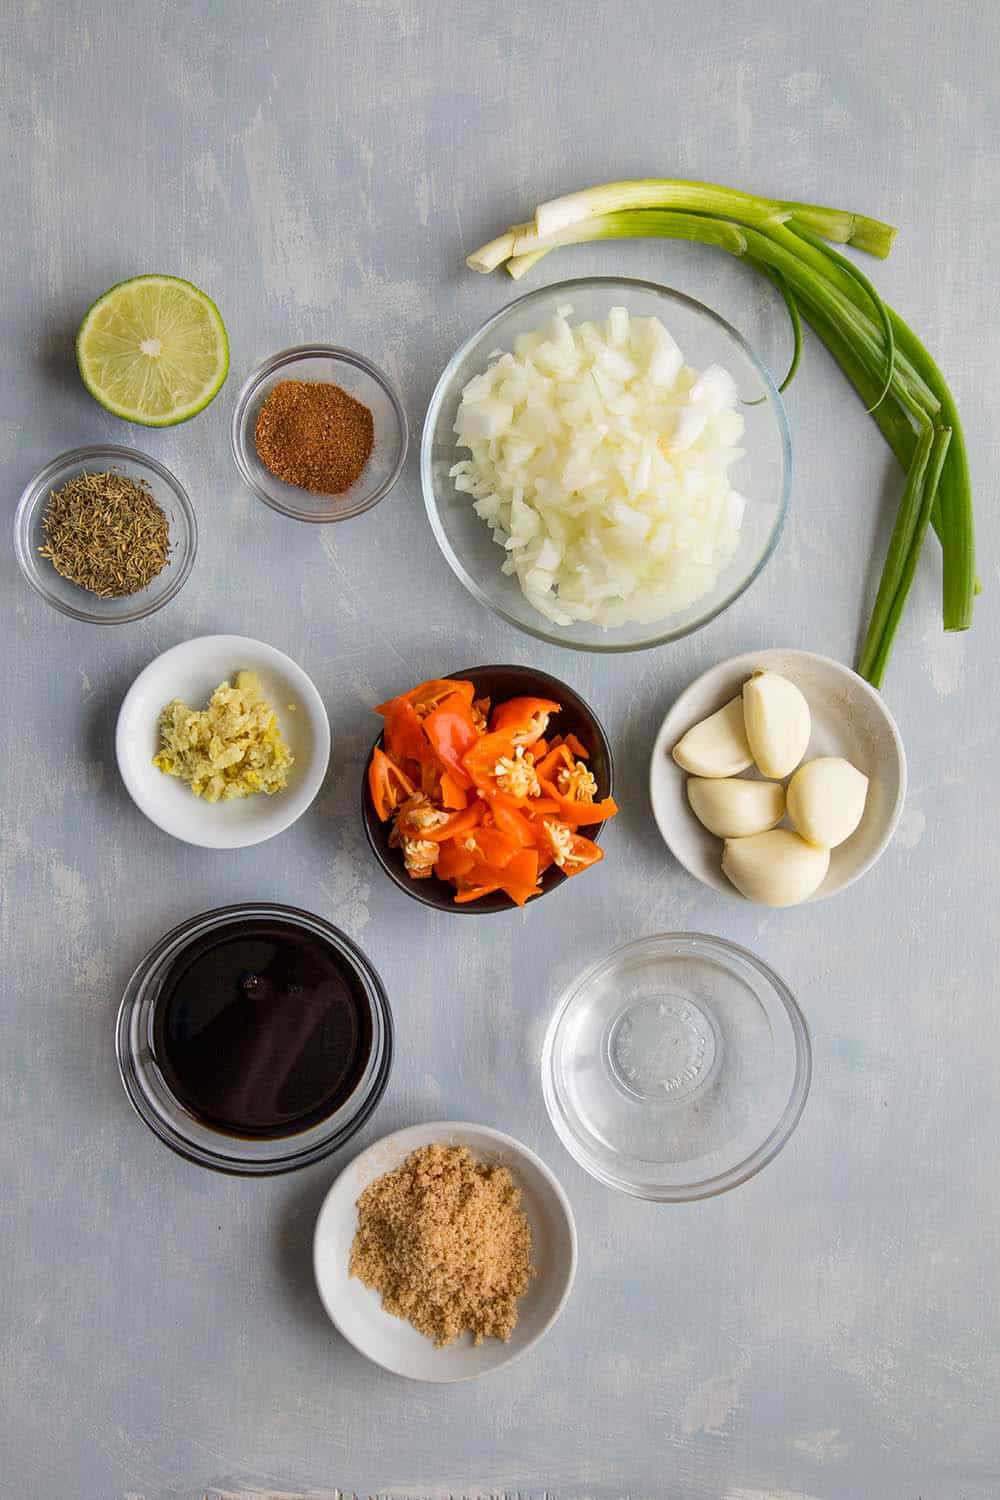 Jamaican Jerk Sauce ingredients